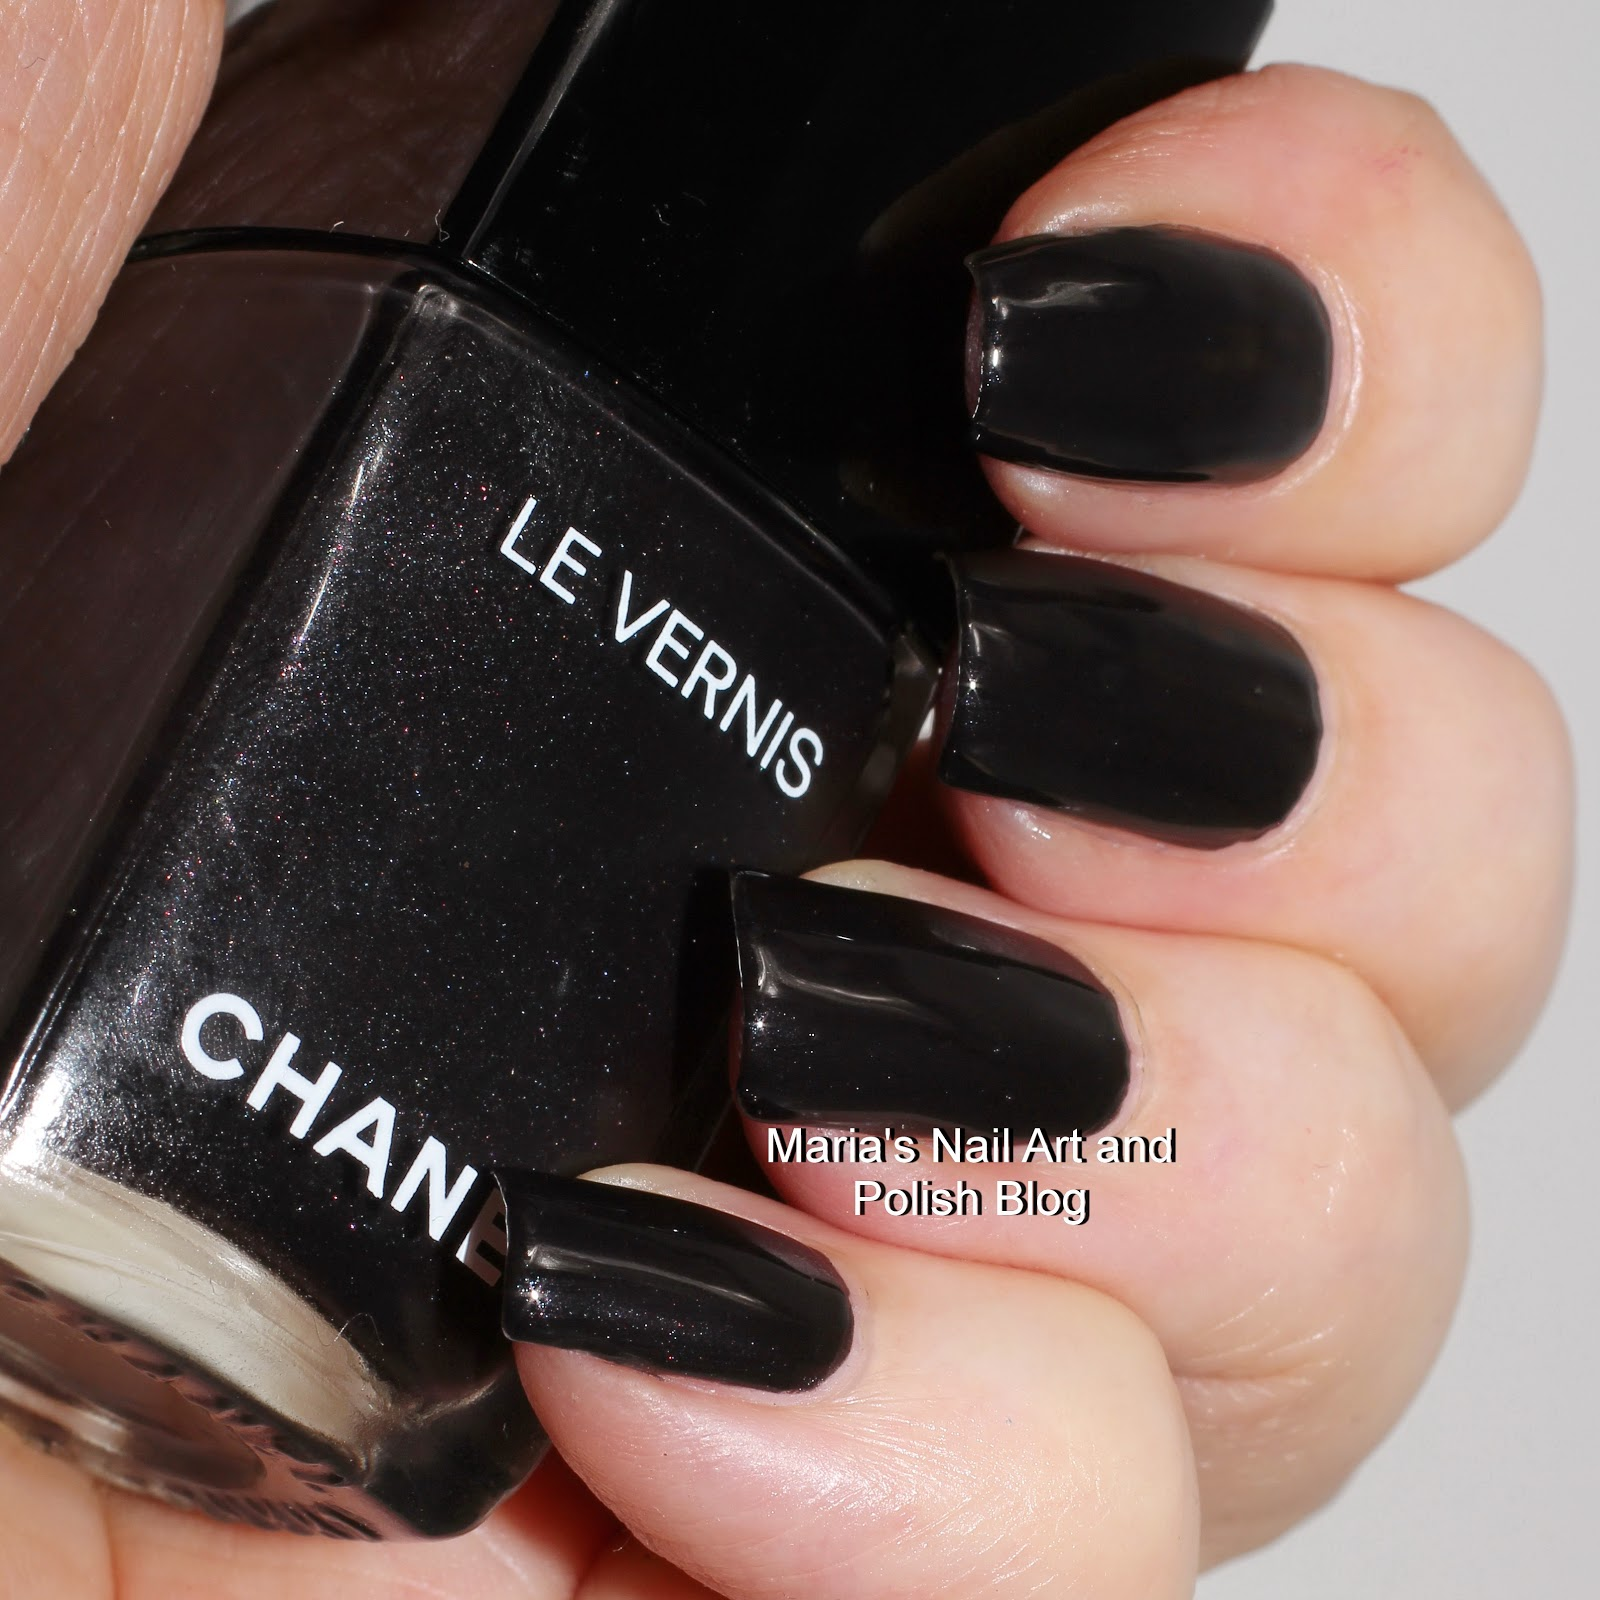 Marias Nail Art And Polish Blog: Chanel Gris Obscur 538